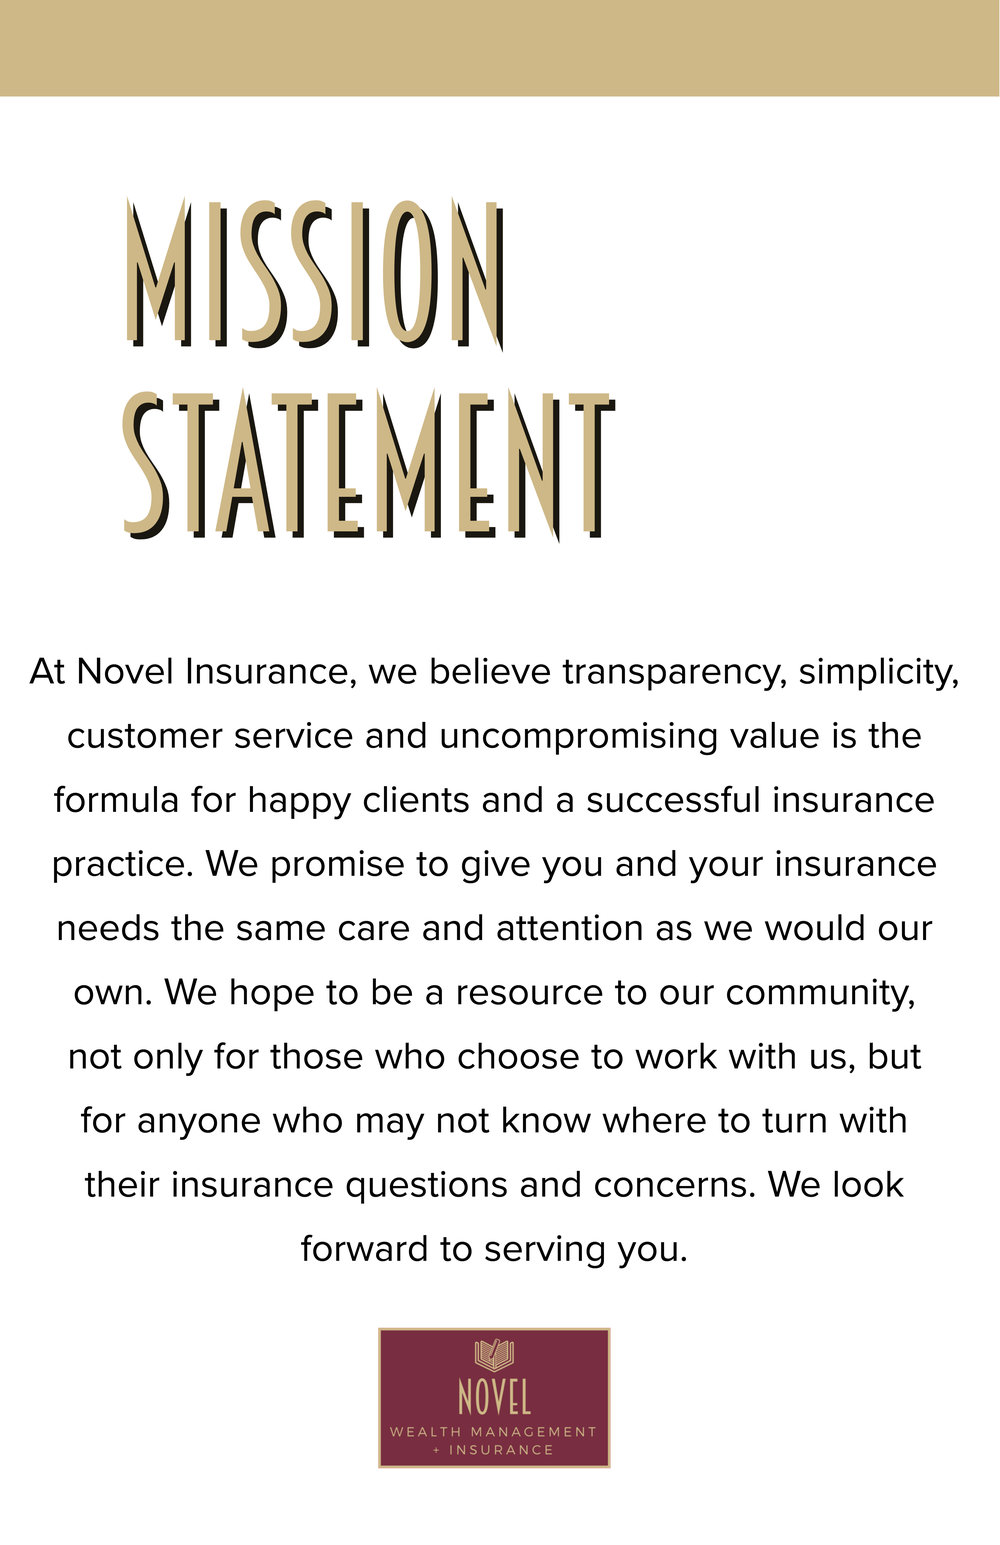 Novel Insurance Mission Statement(1).jpg